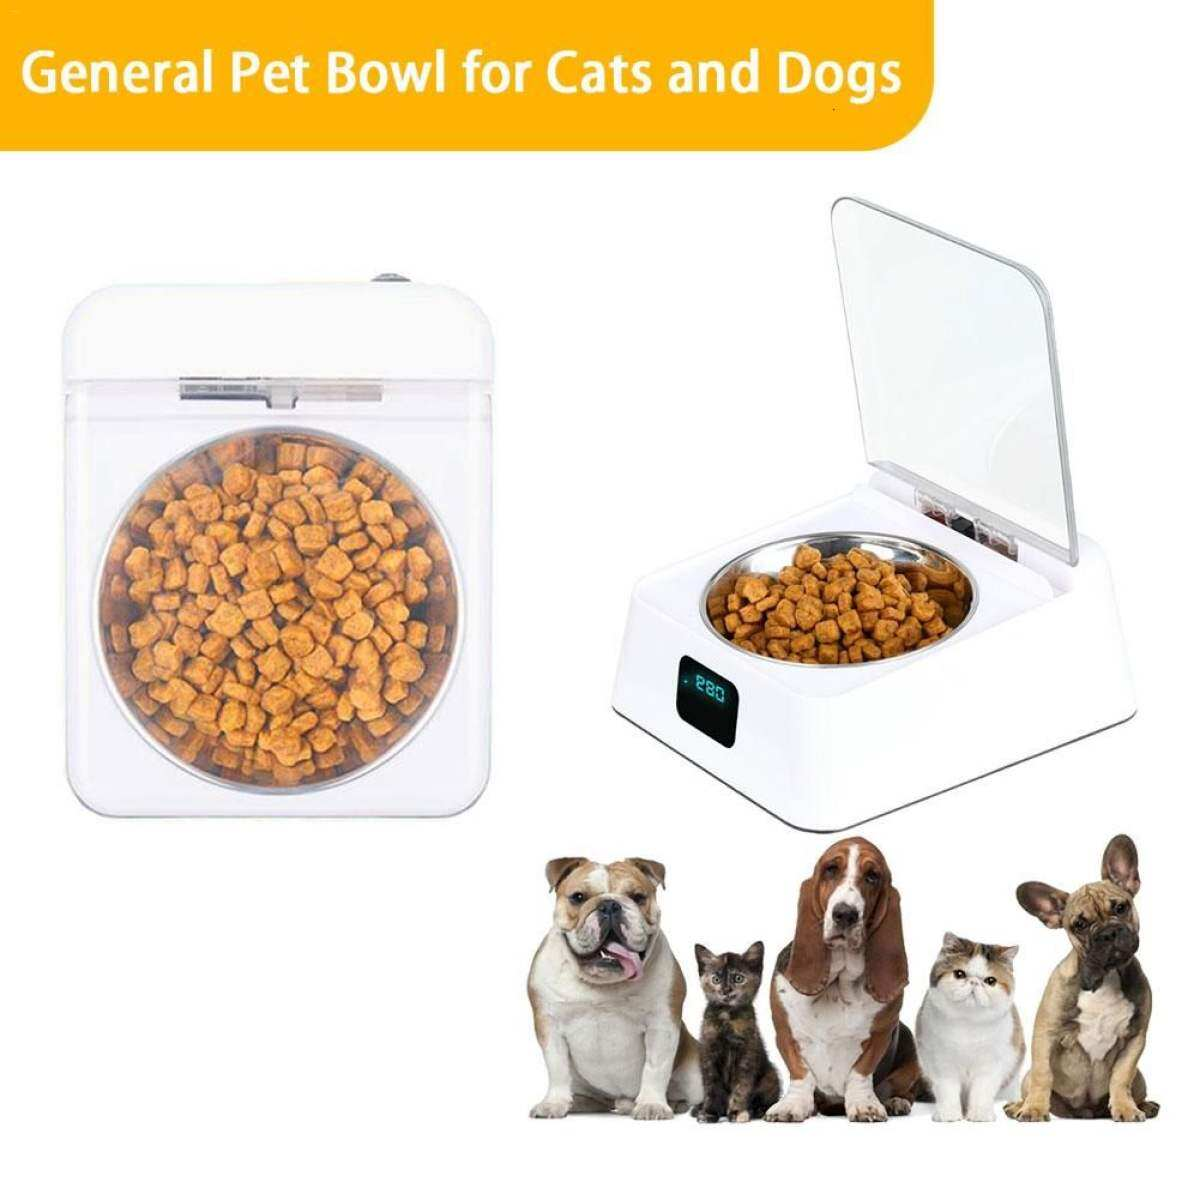 Automatic Pet Feeder Bowl Infrared Sensor Auto Open Cover Intelligent Feeder Anti Mouse Moisture Proof Dog Cat Food Dispenser Hot Sell Lazada